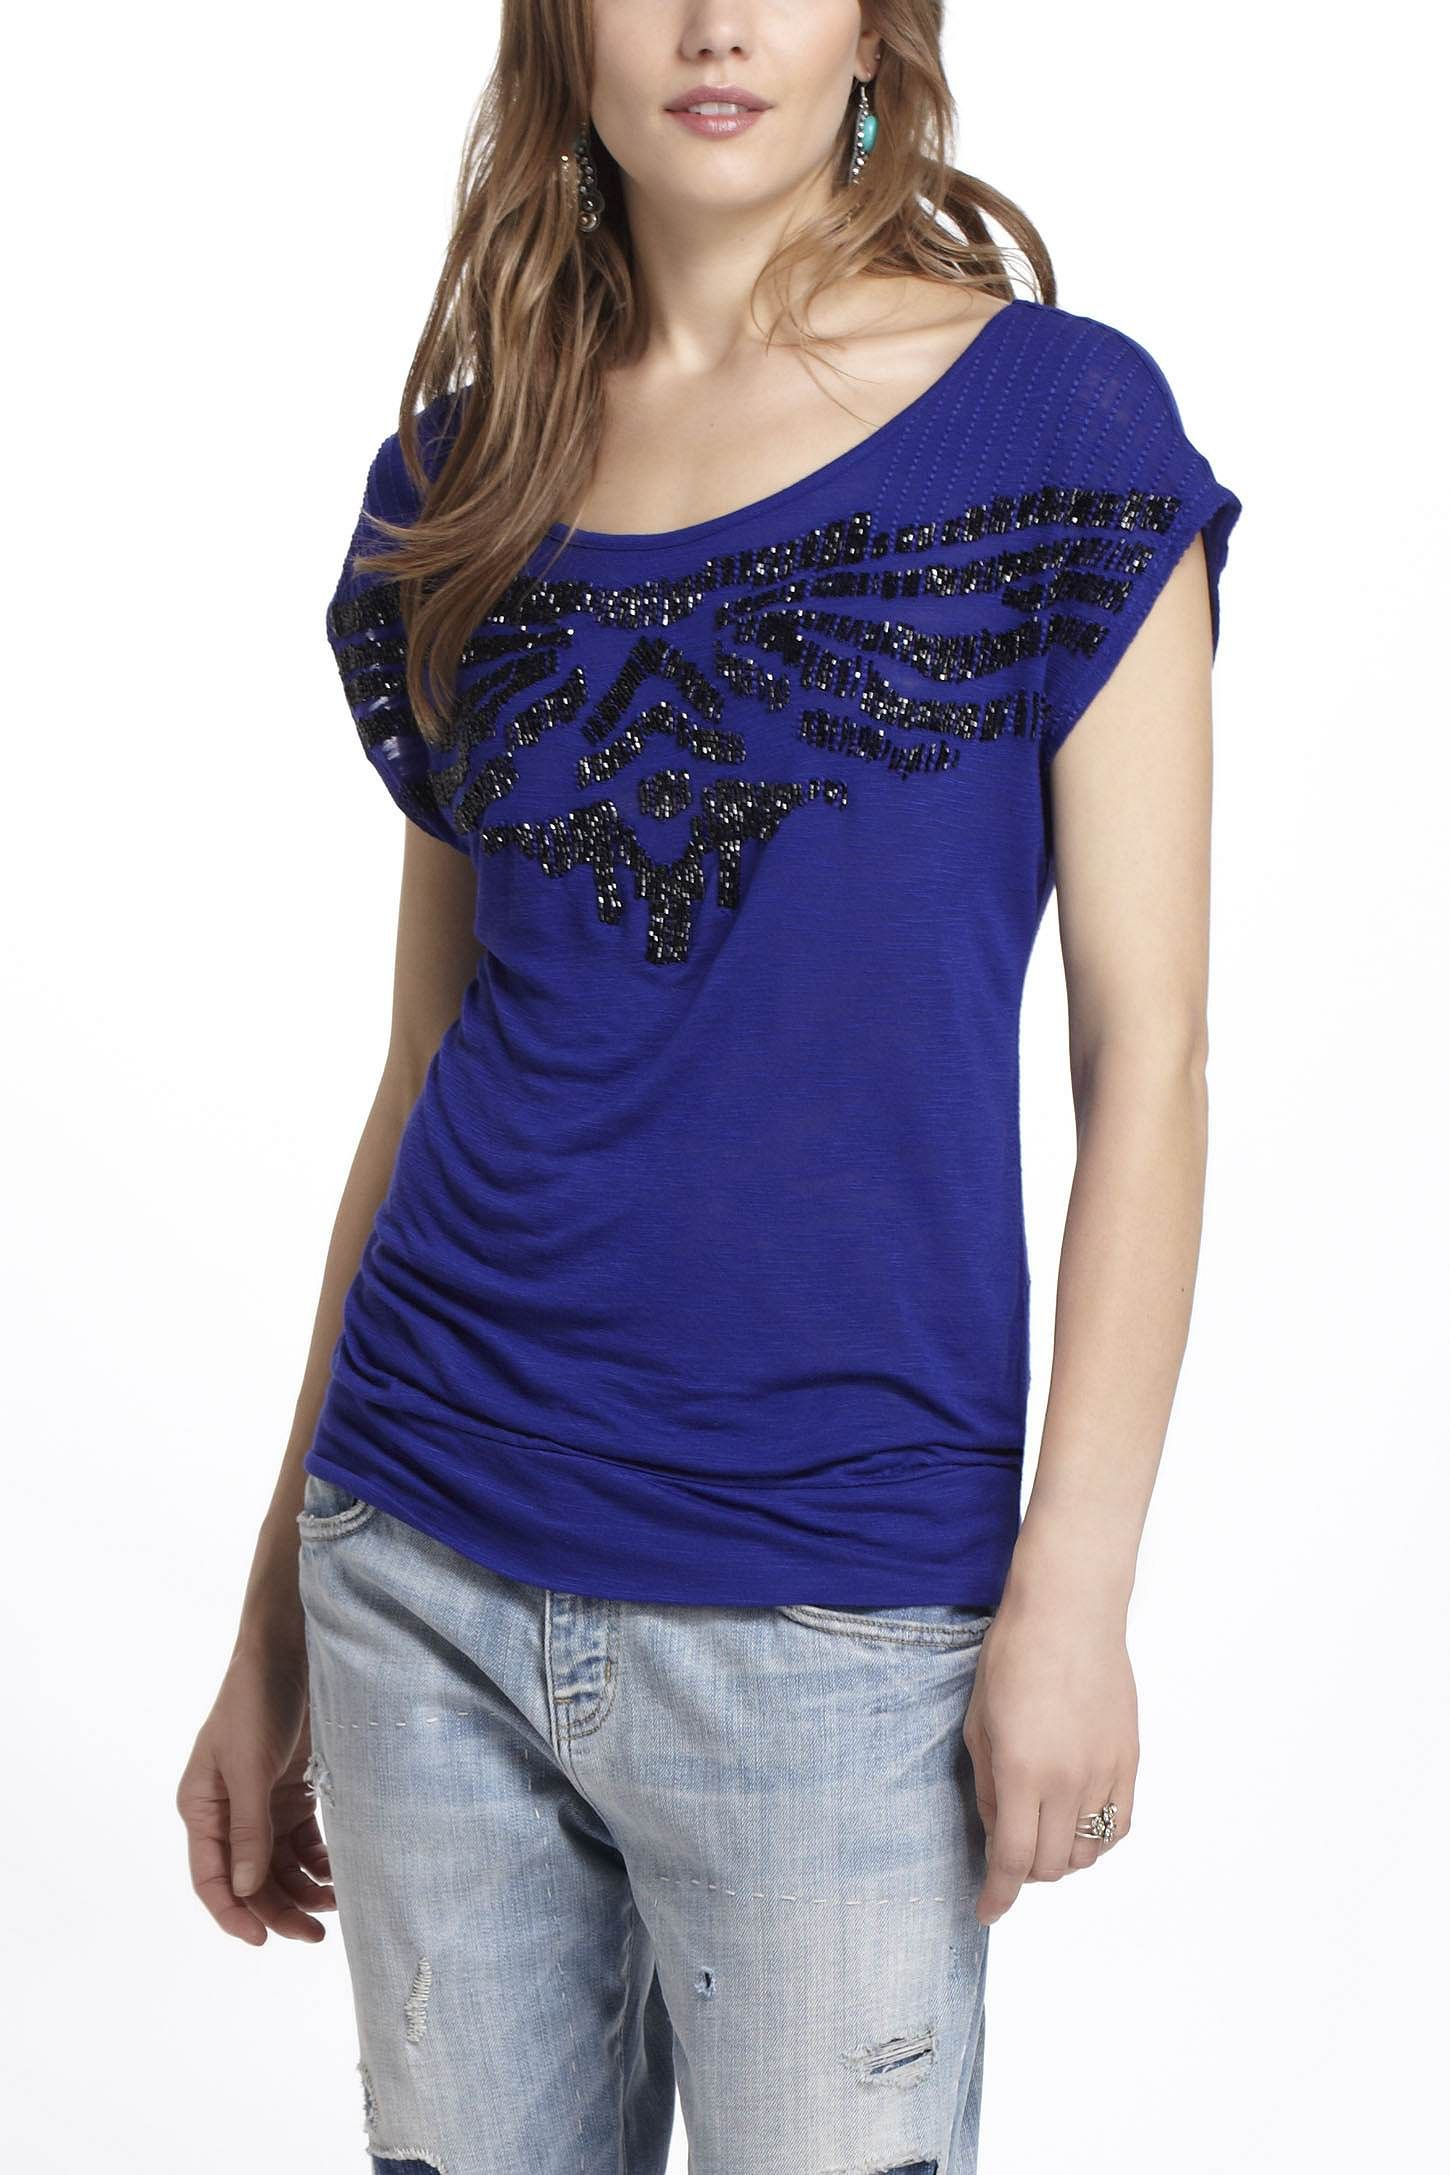 Mmmmm sparkle! / Embellished Embroidery Top - Anthropologie